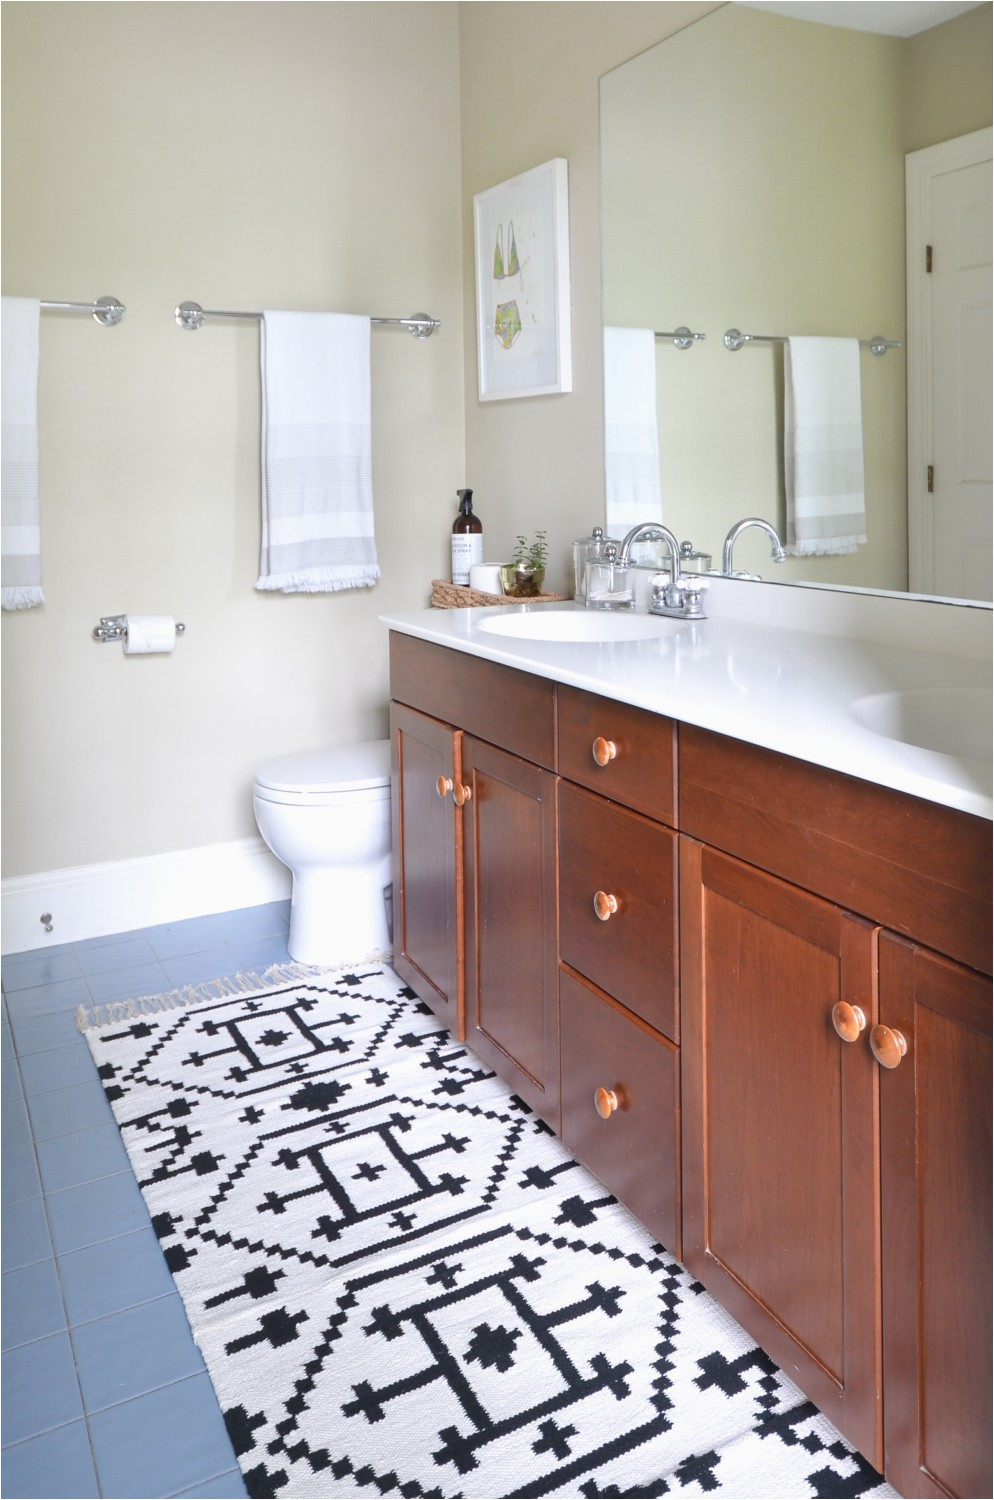 Custom Bath Rug Sizes How to Sew Two Small Rugs to Her to Make A Custom Runner